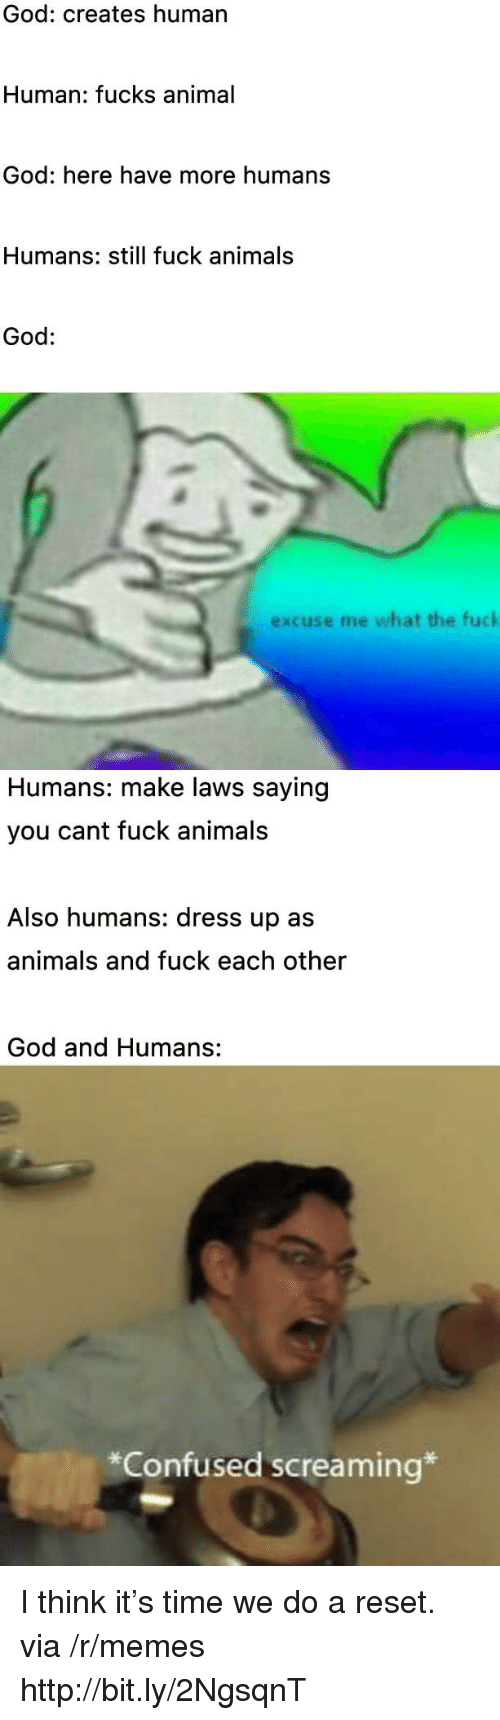 reset: God: creates human  Human: fucks animal  God: here have more humans  Humans: still fuck animals  God:  excuse me what the fuck  Humans: make laws saying  you cant fuck animals  Also humans: dress up as  animals and fuck each other  God and Humans:  *Confused screaming* I think it's time we do a reset. via /r/memes http://bit.ly/2NgsqnT